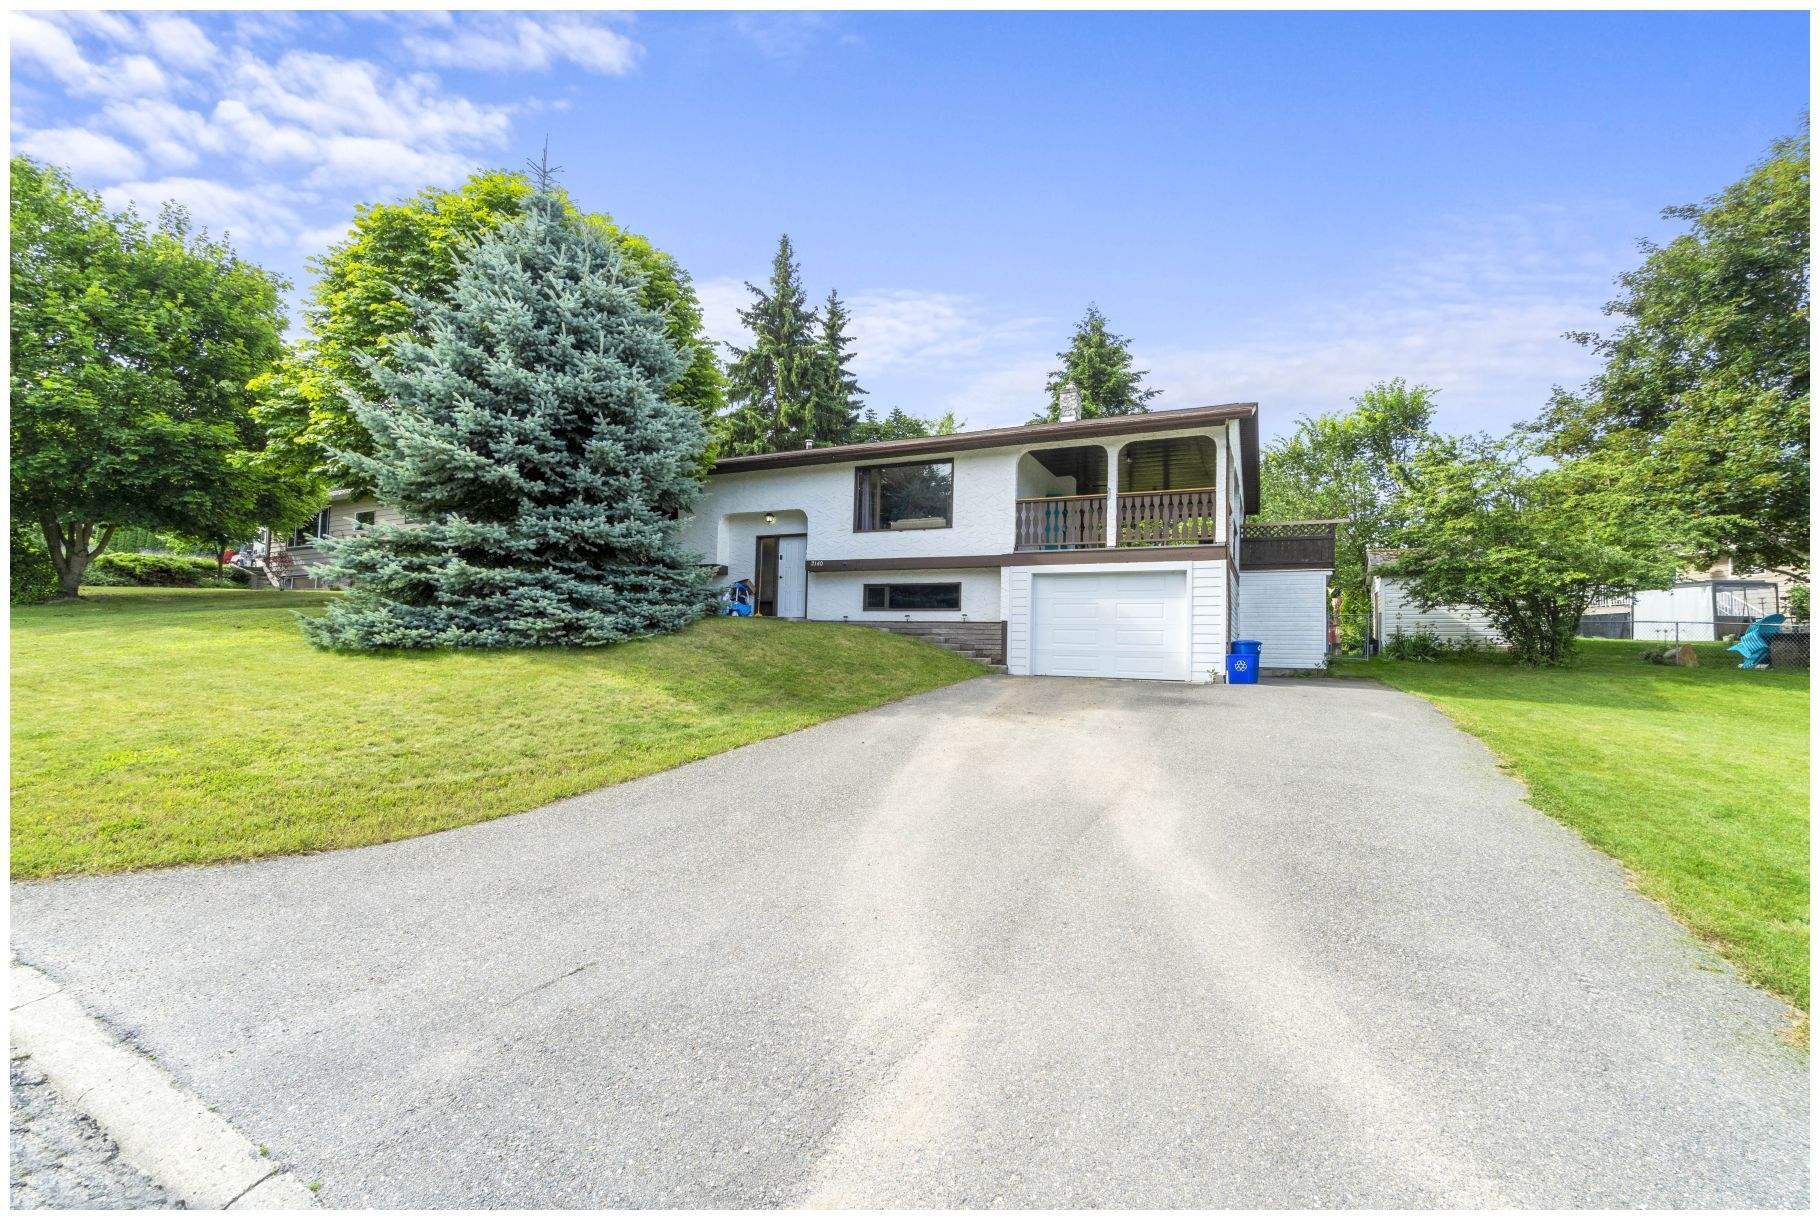 Main Photo: 2140 Northeast 23 Avenue in Salmon Arm: Upper Applewood House for sale : MLS®# 10210719